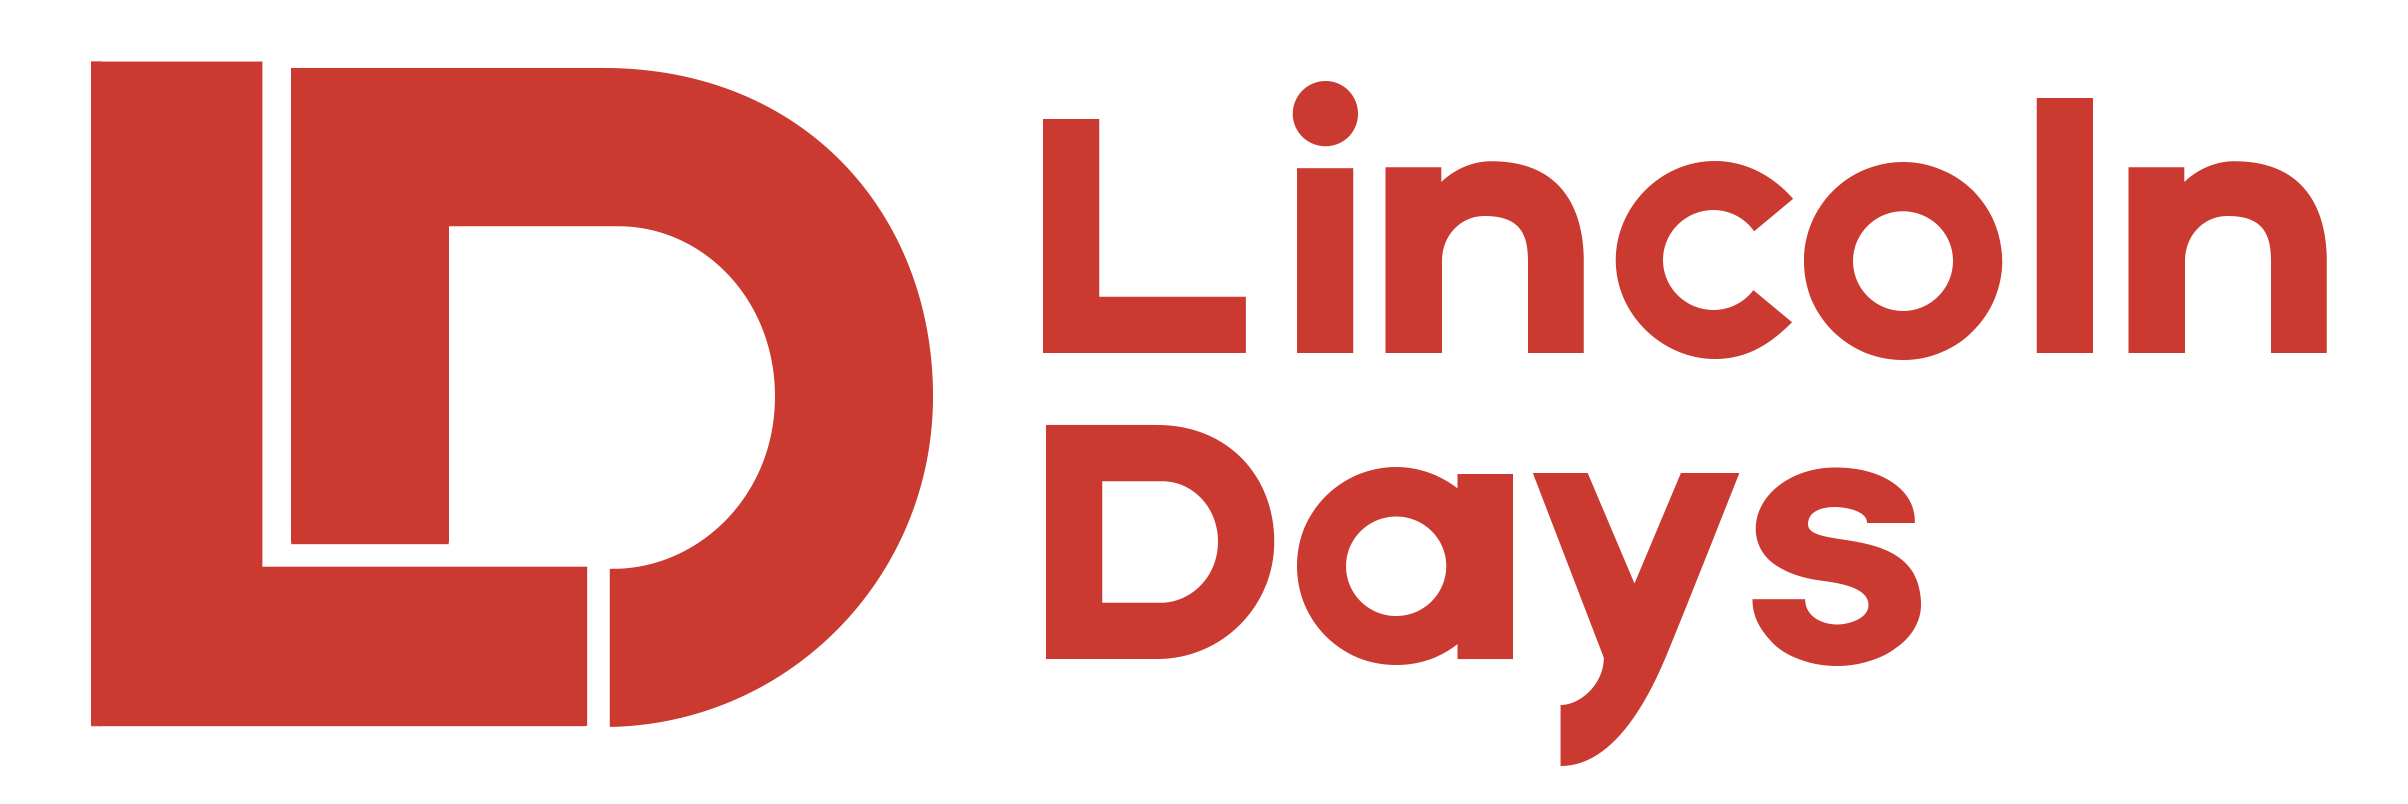 Lincoln Days 2017